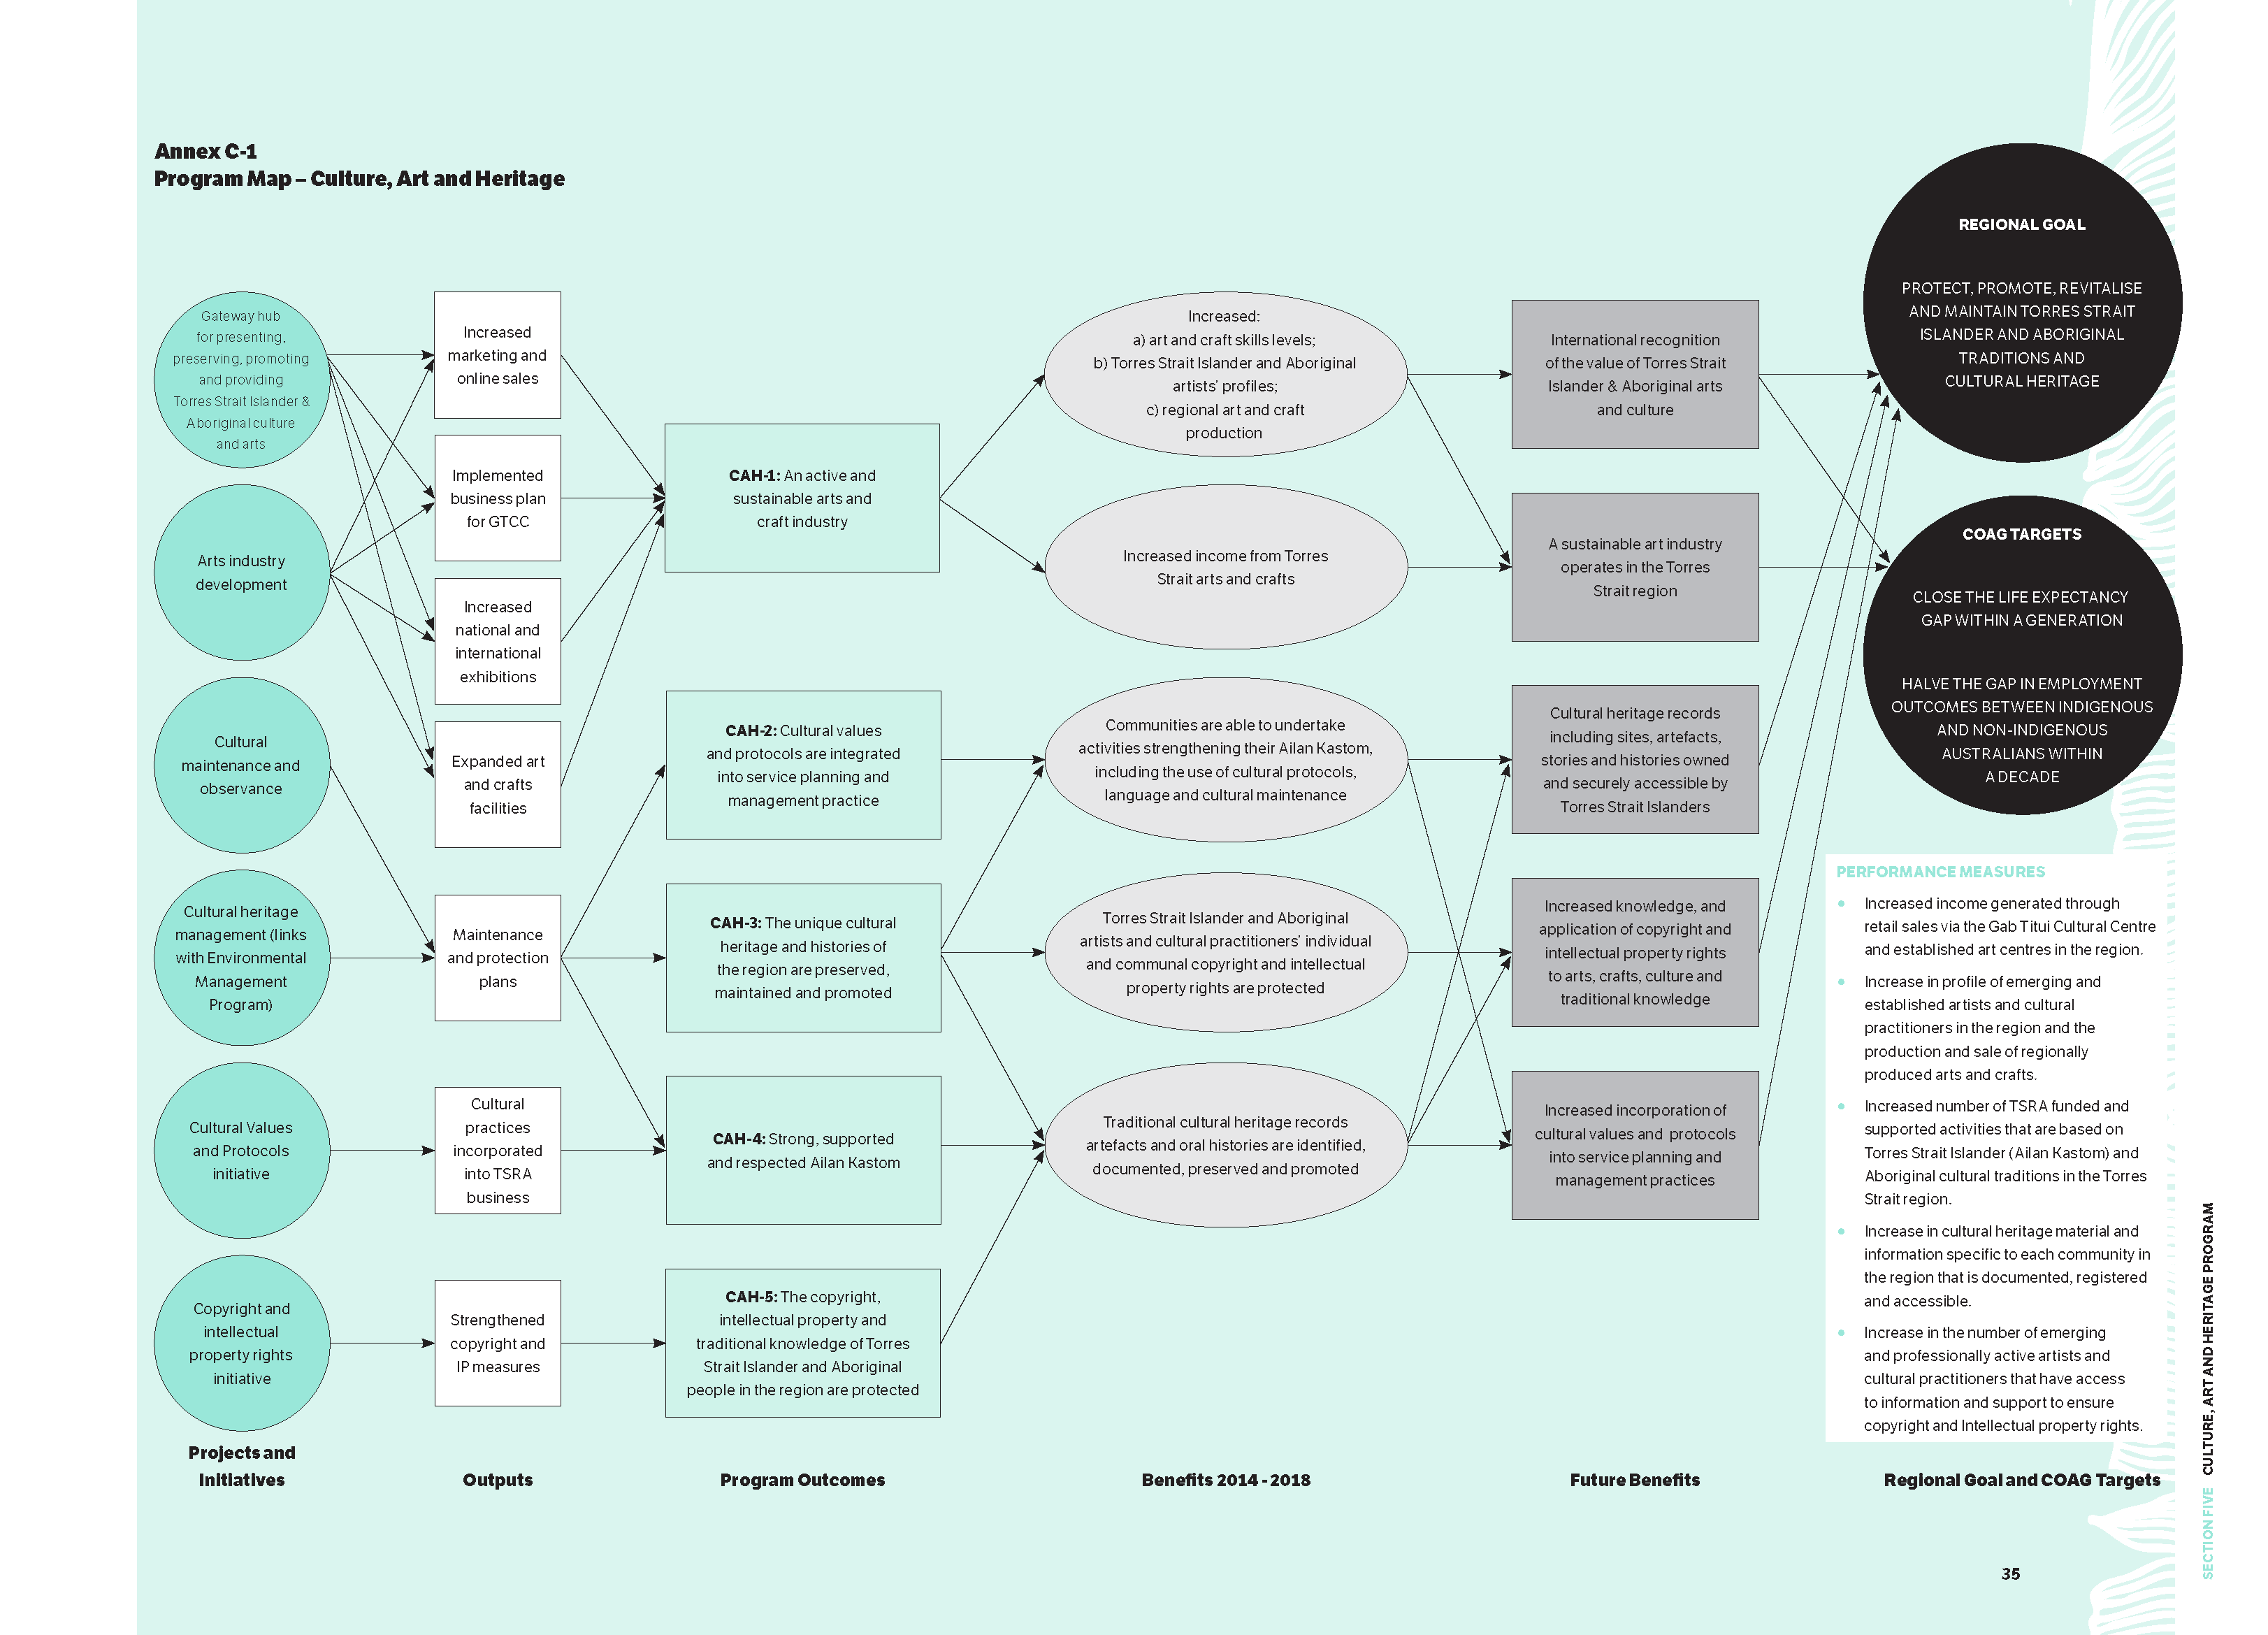 A chart illustrating the Program Map - Culture, Art and Heritage